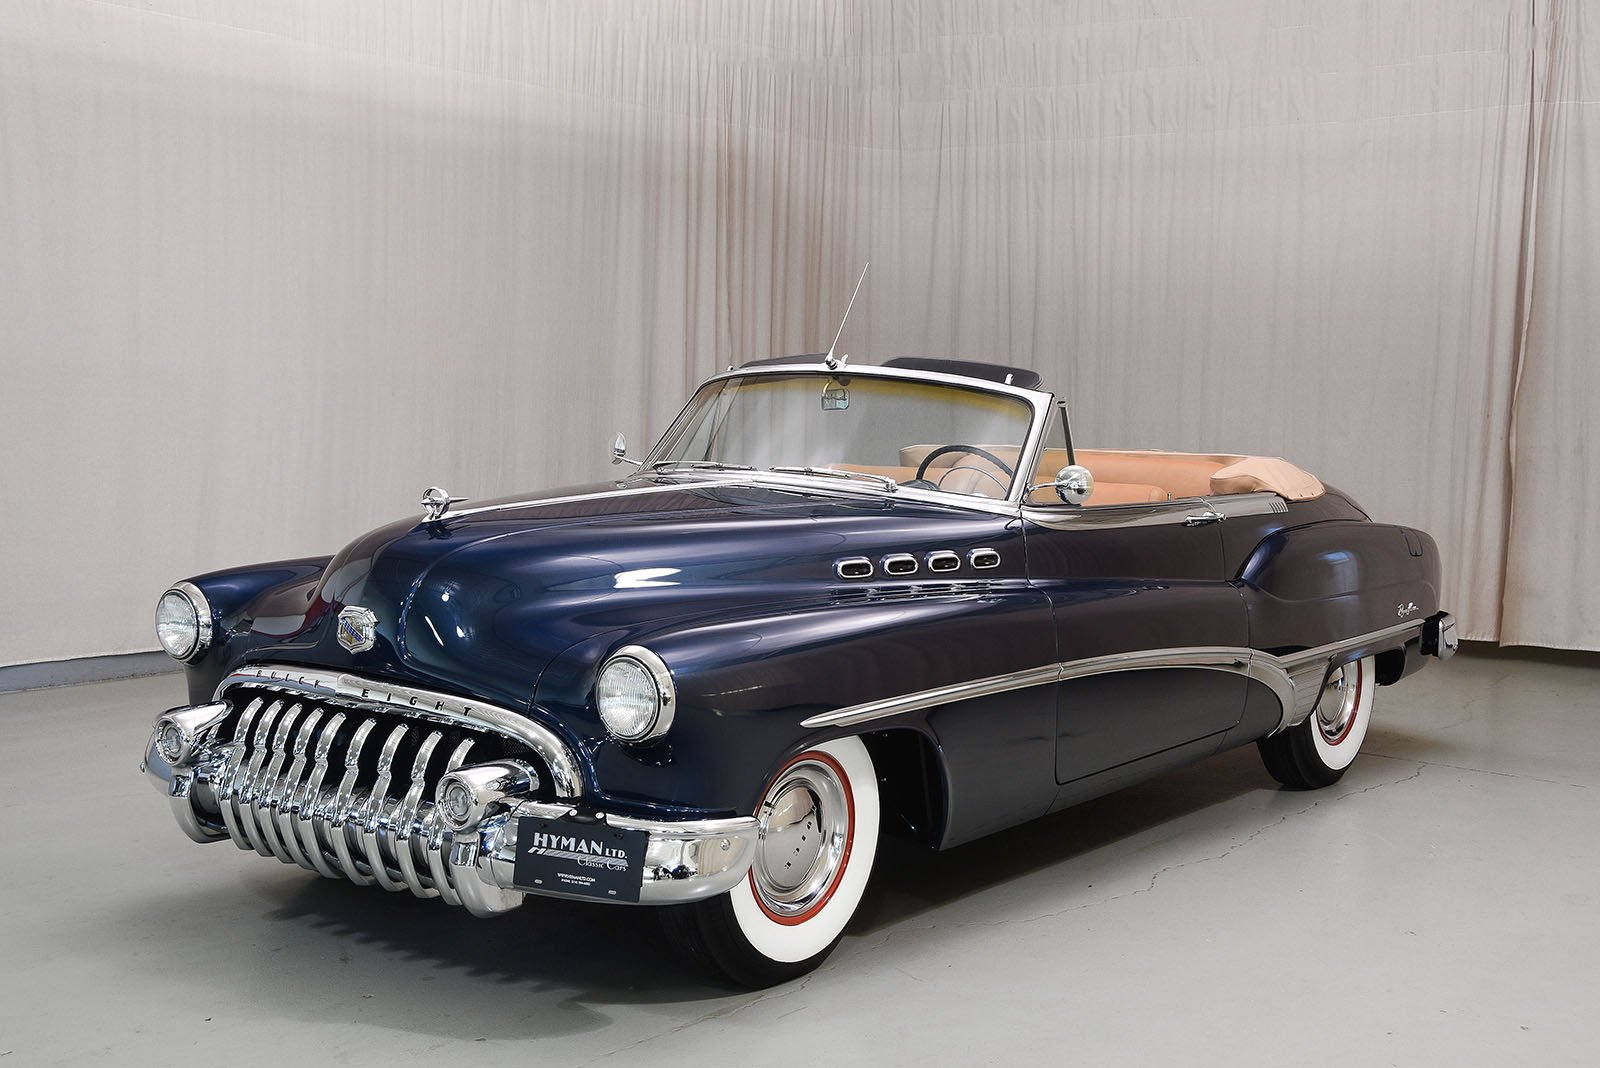 2 Door Convertible >> 1950 Buick Roadmaster Convertible | Hyman Ltd. Classic Cars